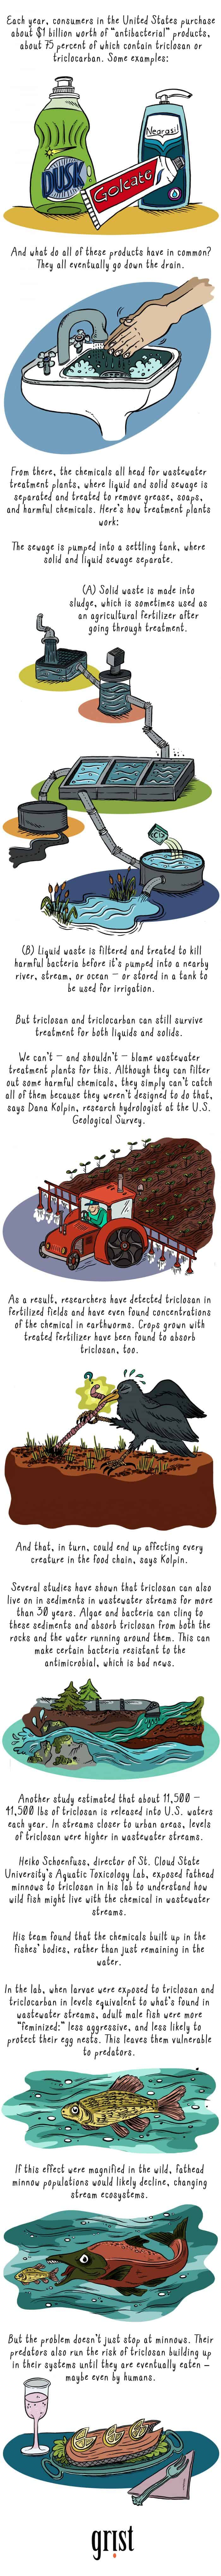 Antibacterial Soap Affects Infographic